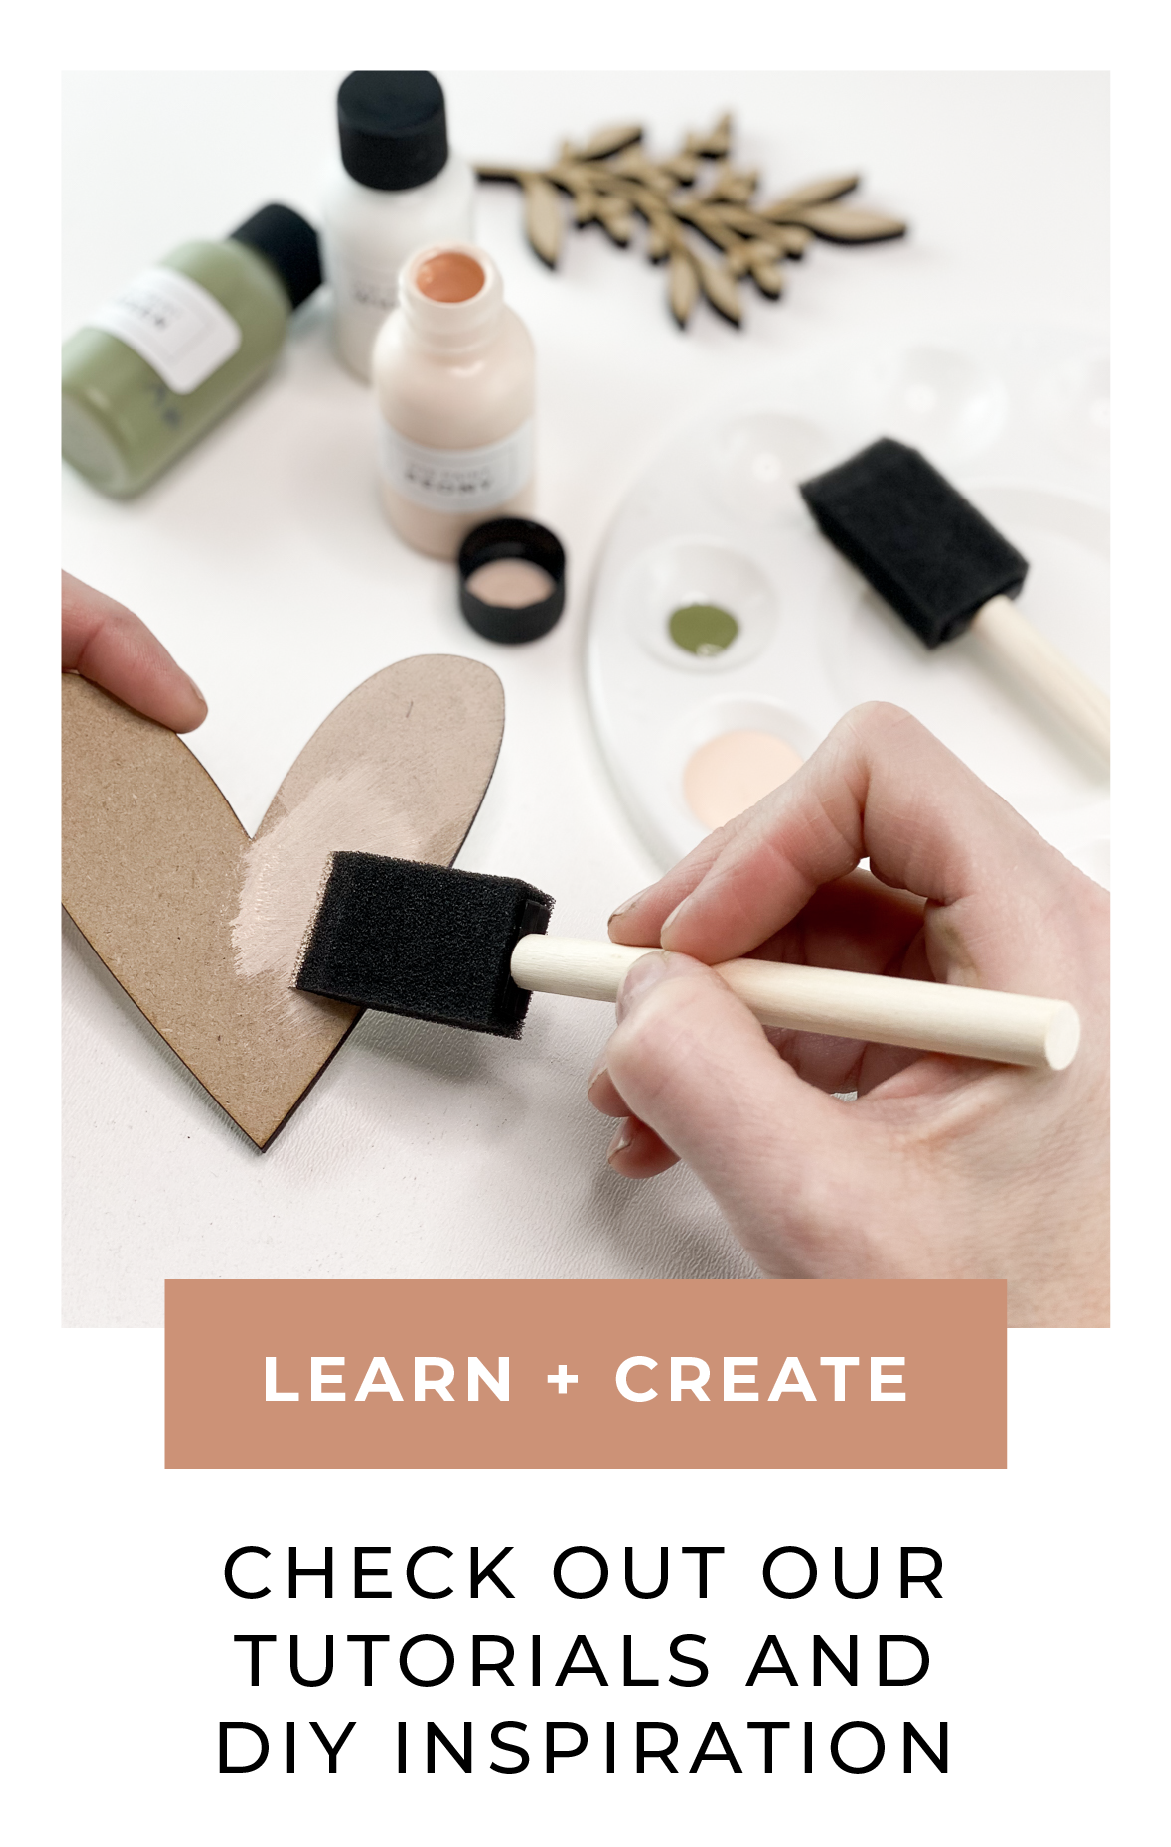 Check out our tutorials and DIY inspiration